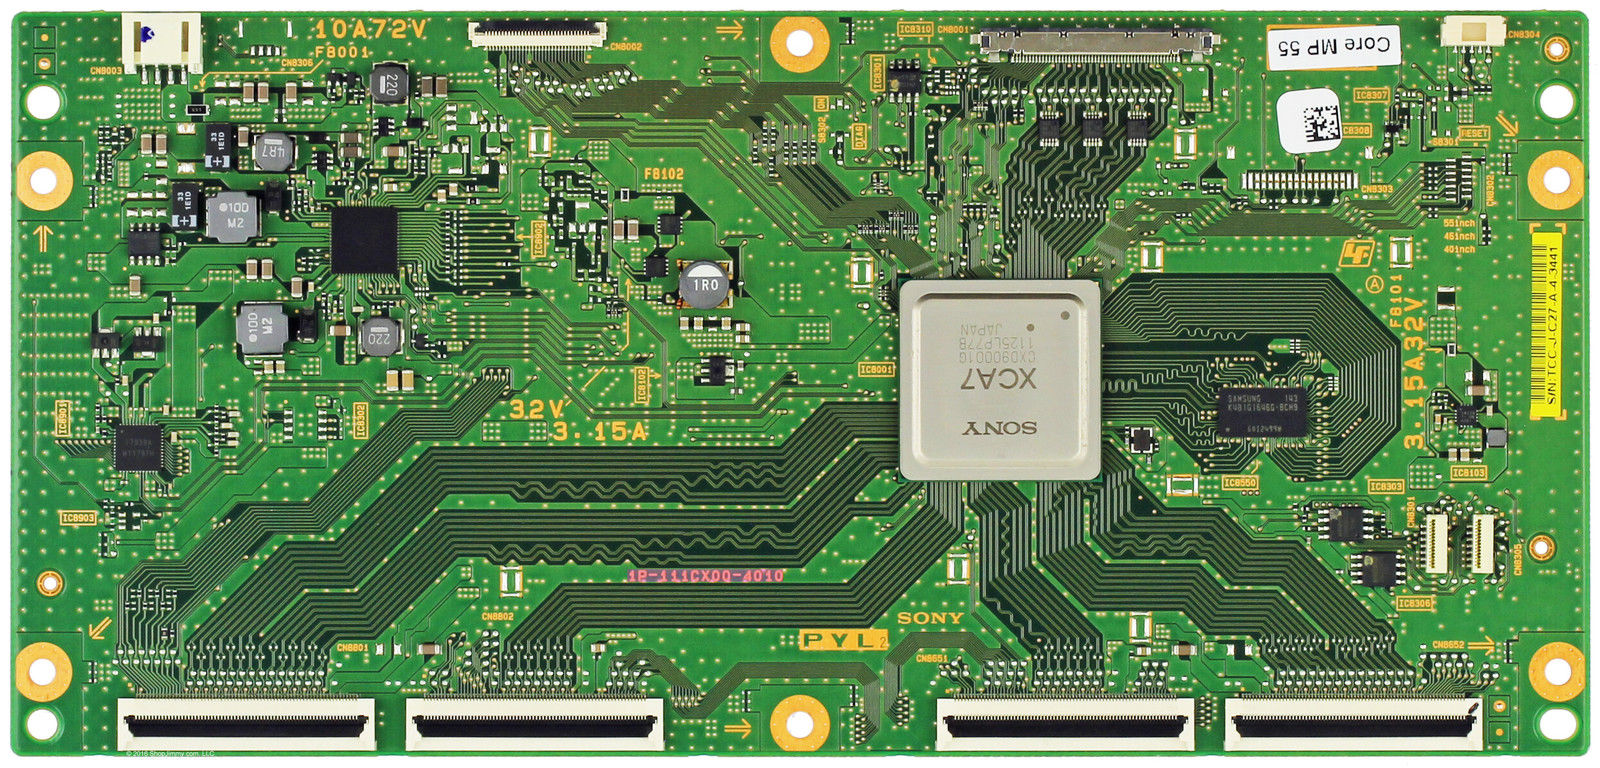 Sony 1P-111CX00-4010 PYL2 T-con Board for KDL-46HX850